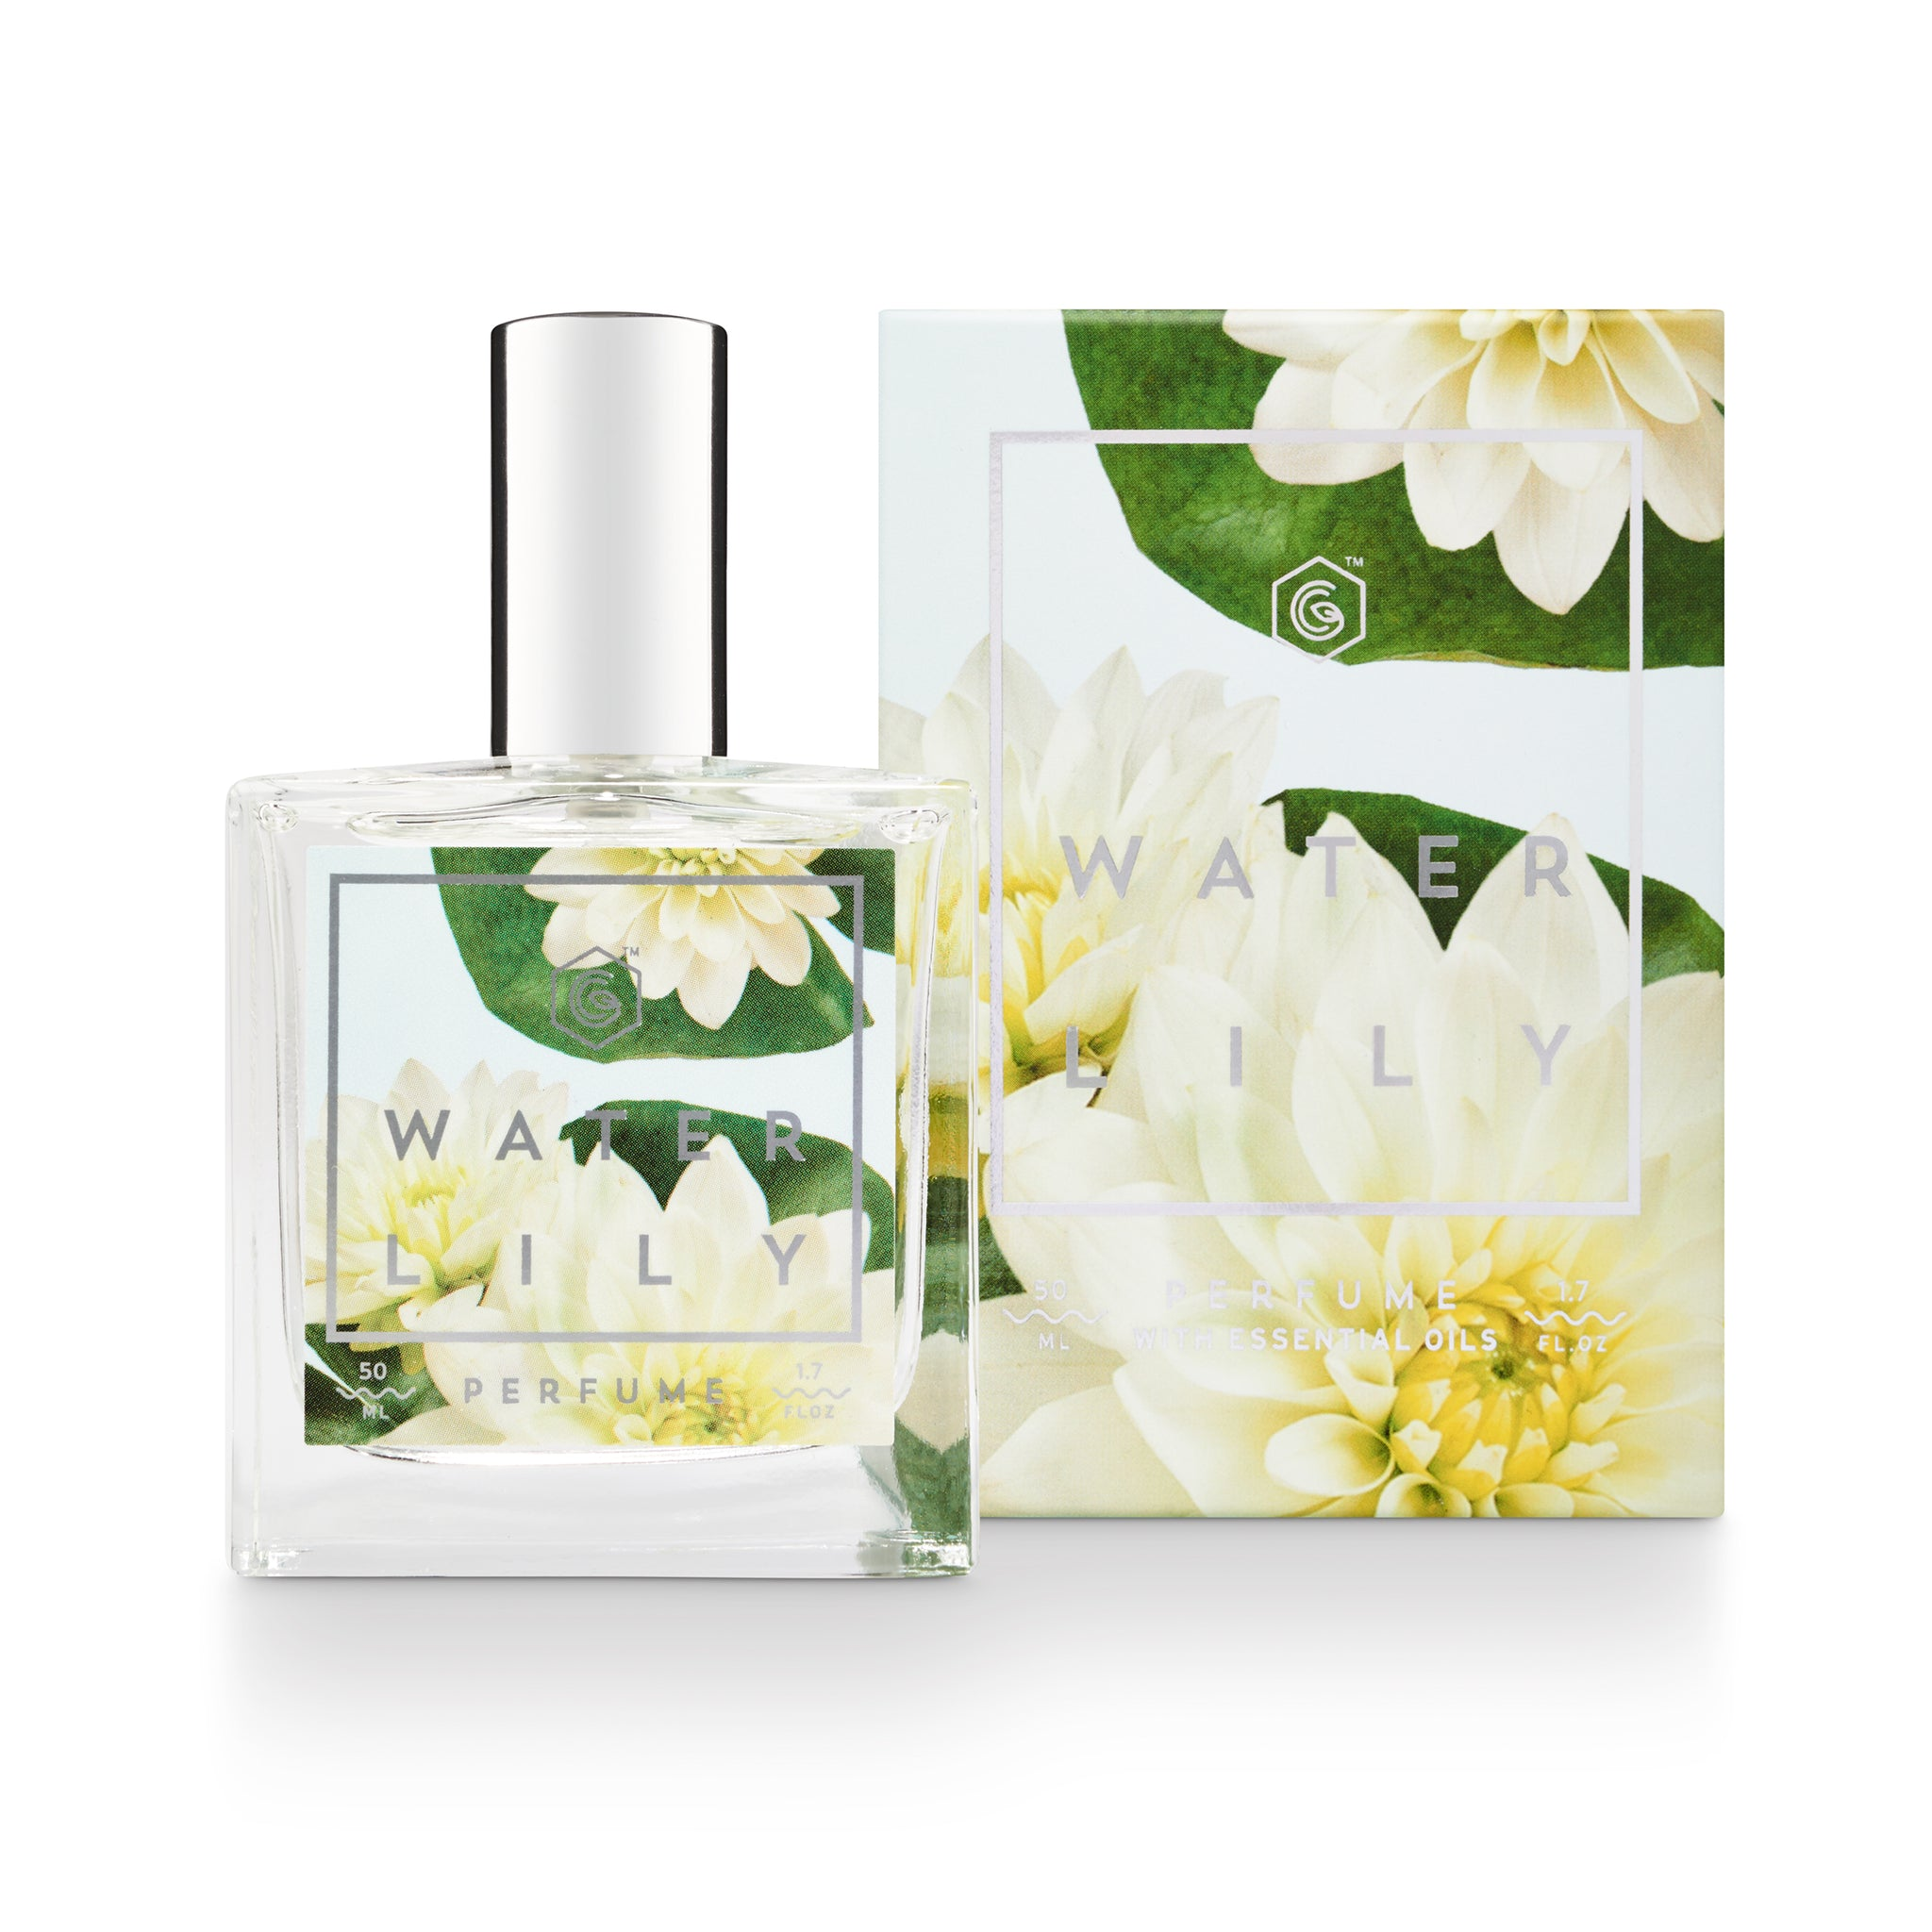 Waterlily Eau de Parfum